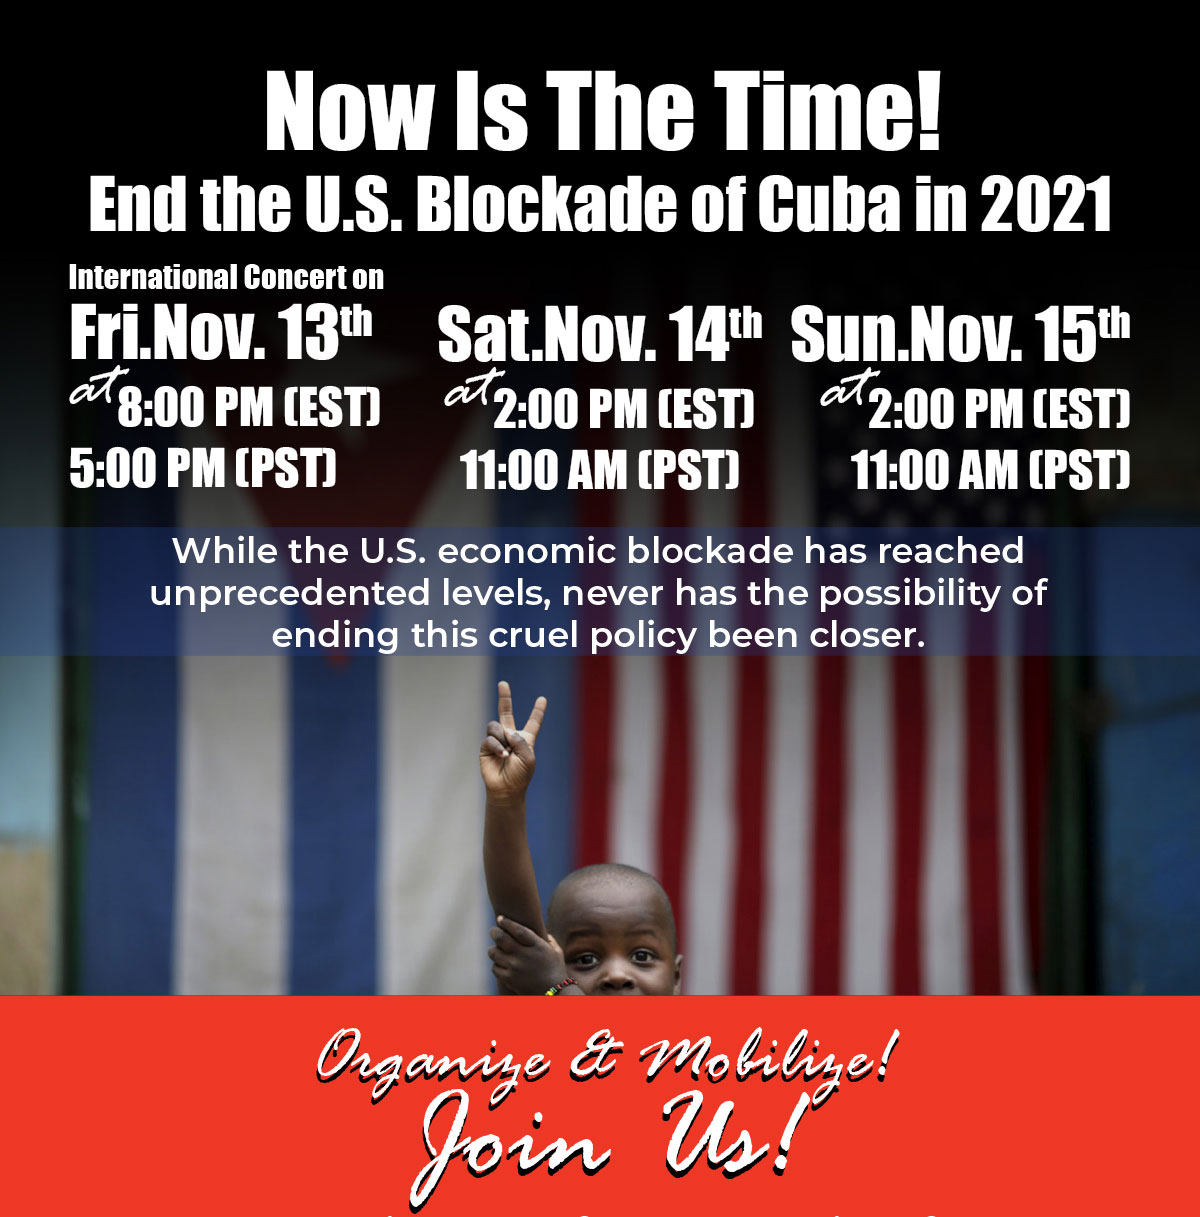 Now is the time! International Conference Webinar for US-Cuba Normalization